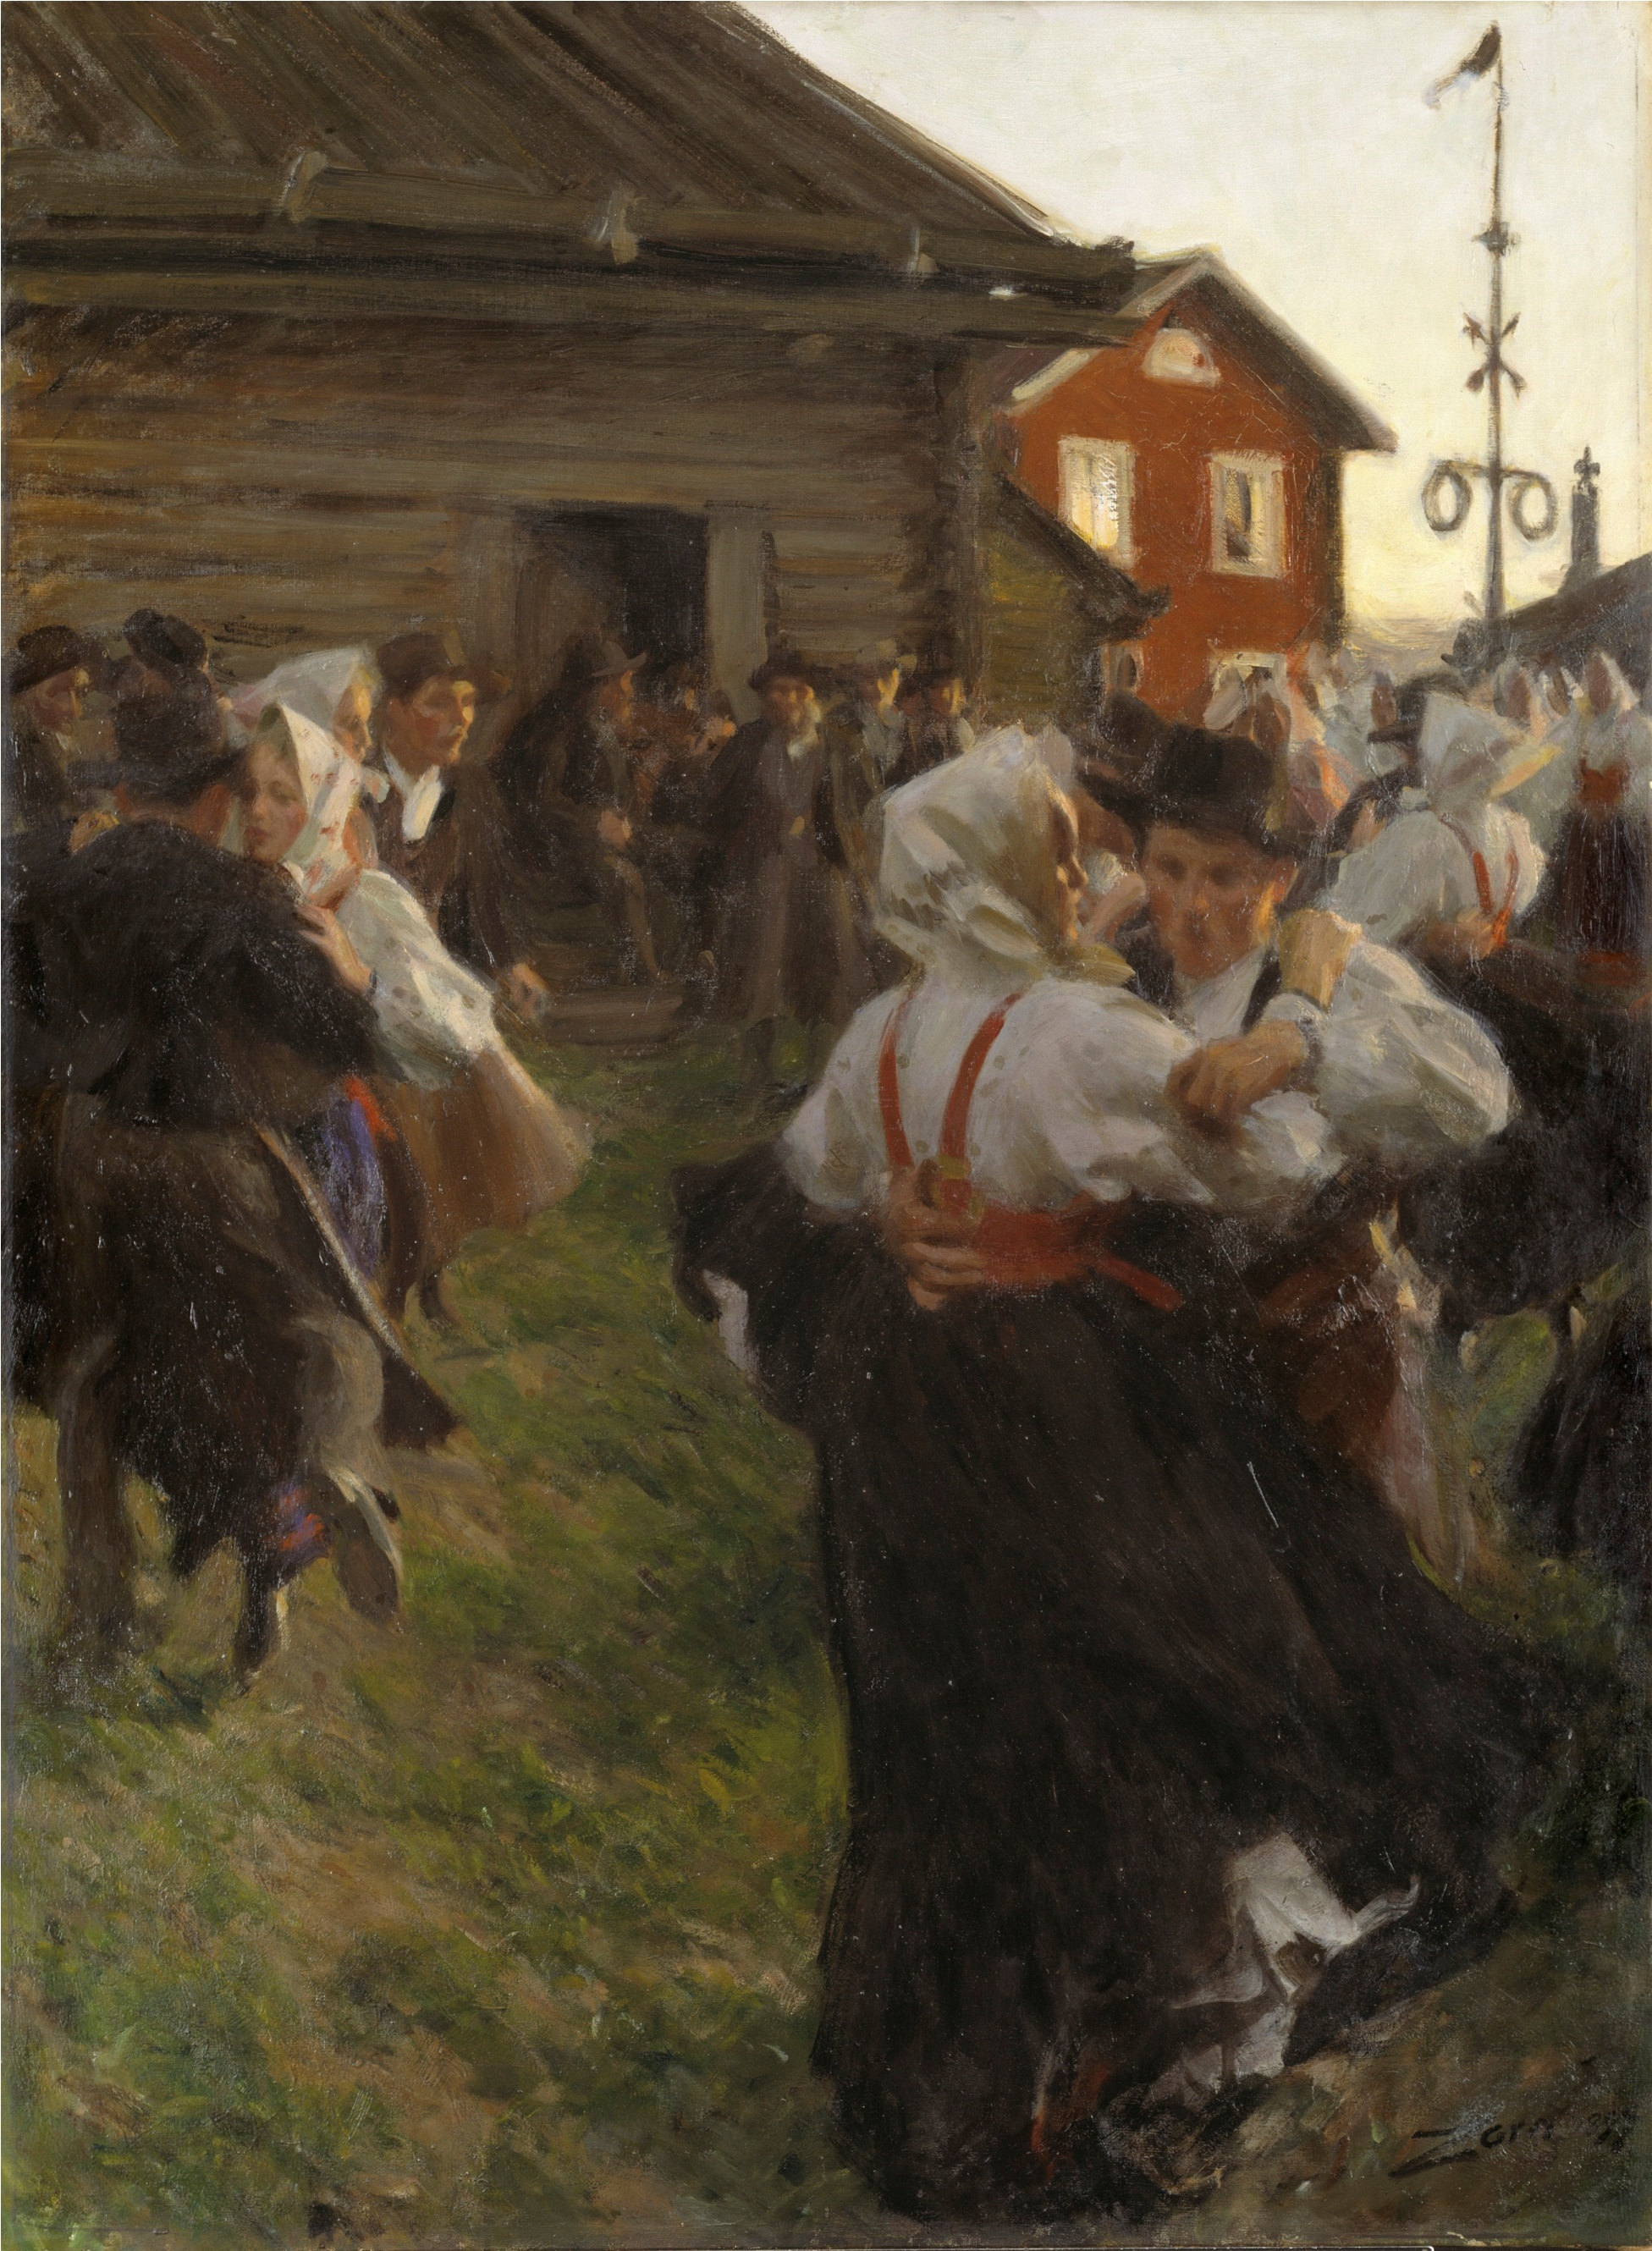 File:Midsommardans av Anders Zorn 1897.jpg - Wikimedia Commons